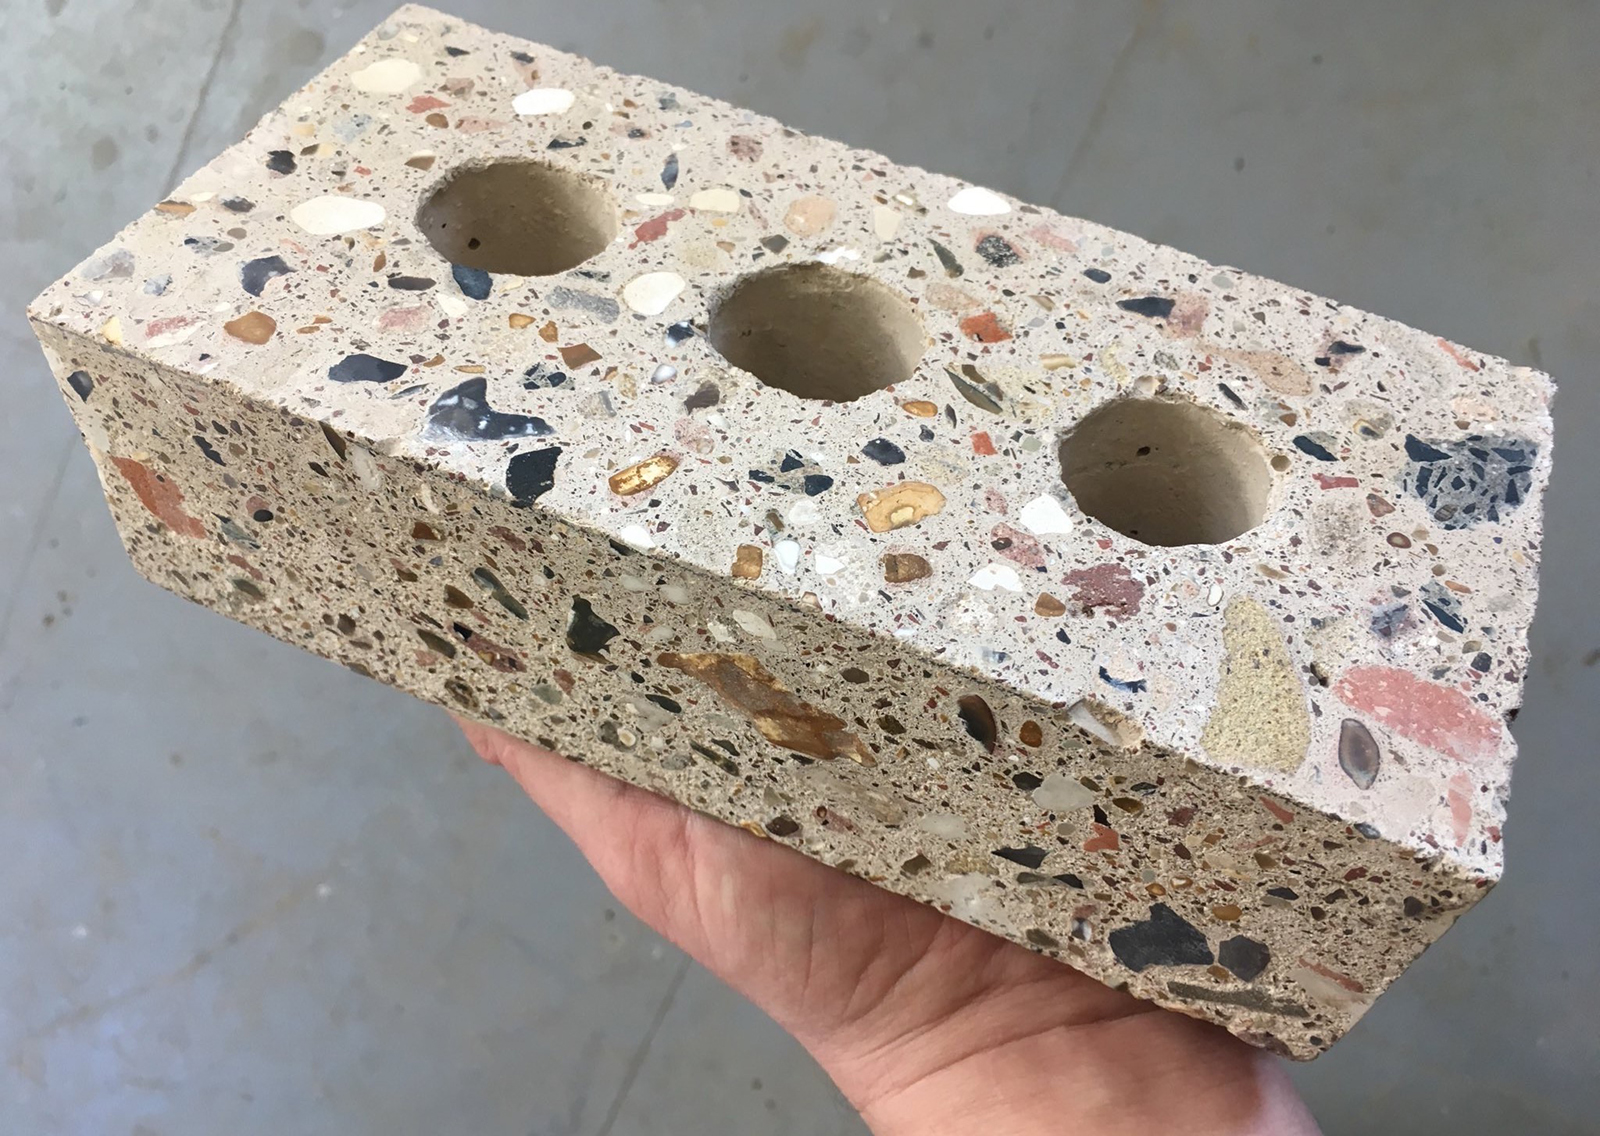 Brick made with waste materials